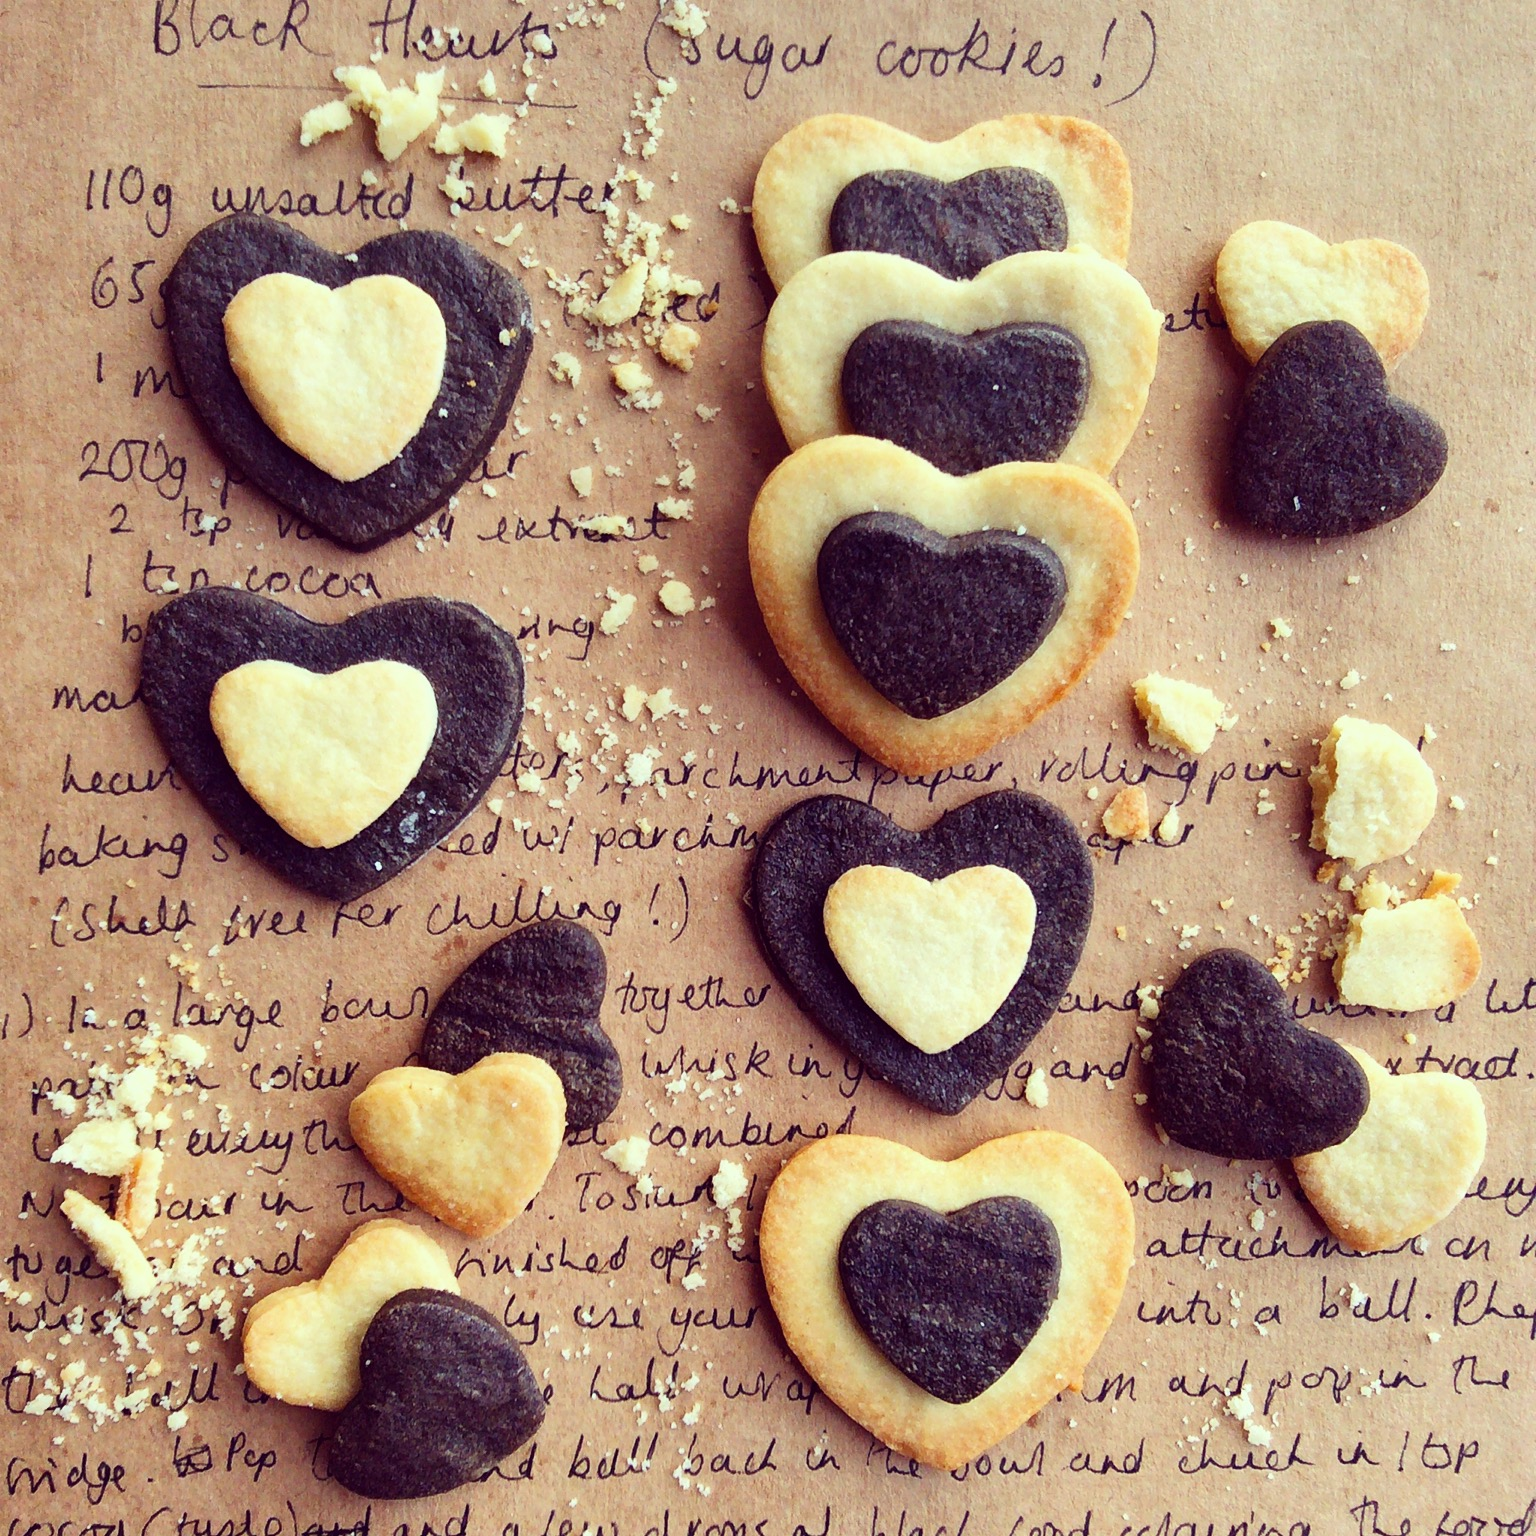 'Black Heart' Sugar Cookies